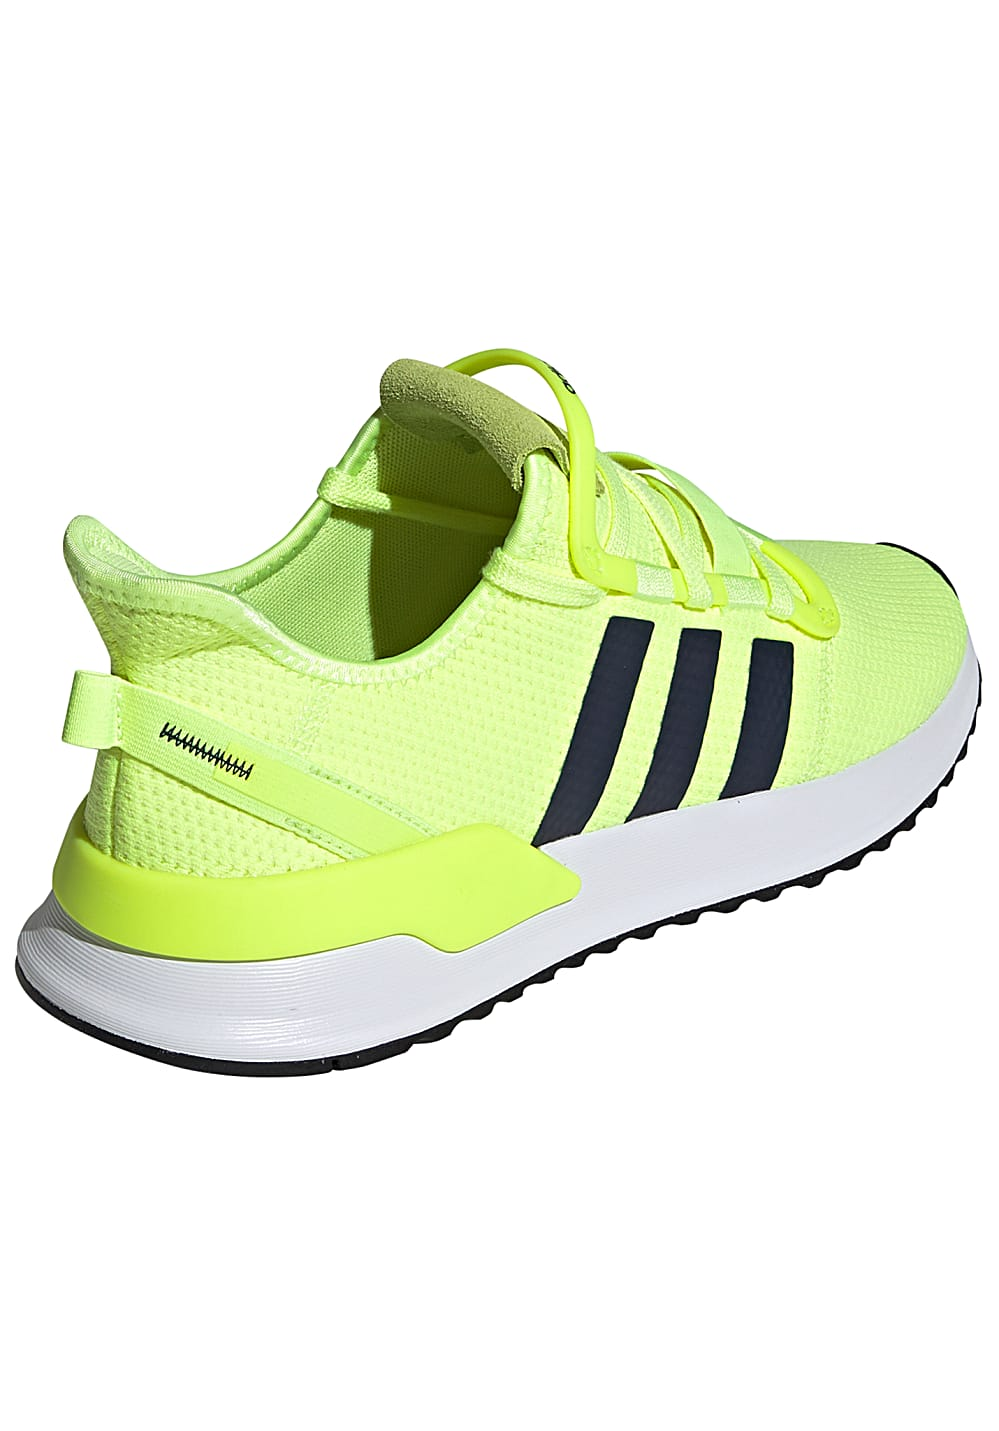 taille 40 fd497 9d6db Homme Jaune U Vn80mwno Pour Path Run Baskets Adidas ...